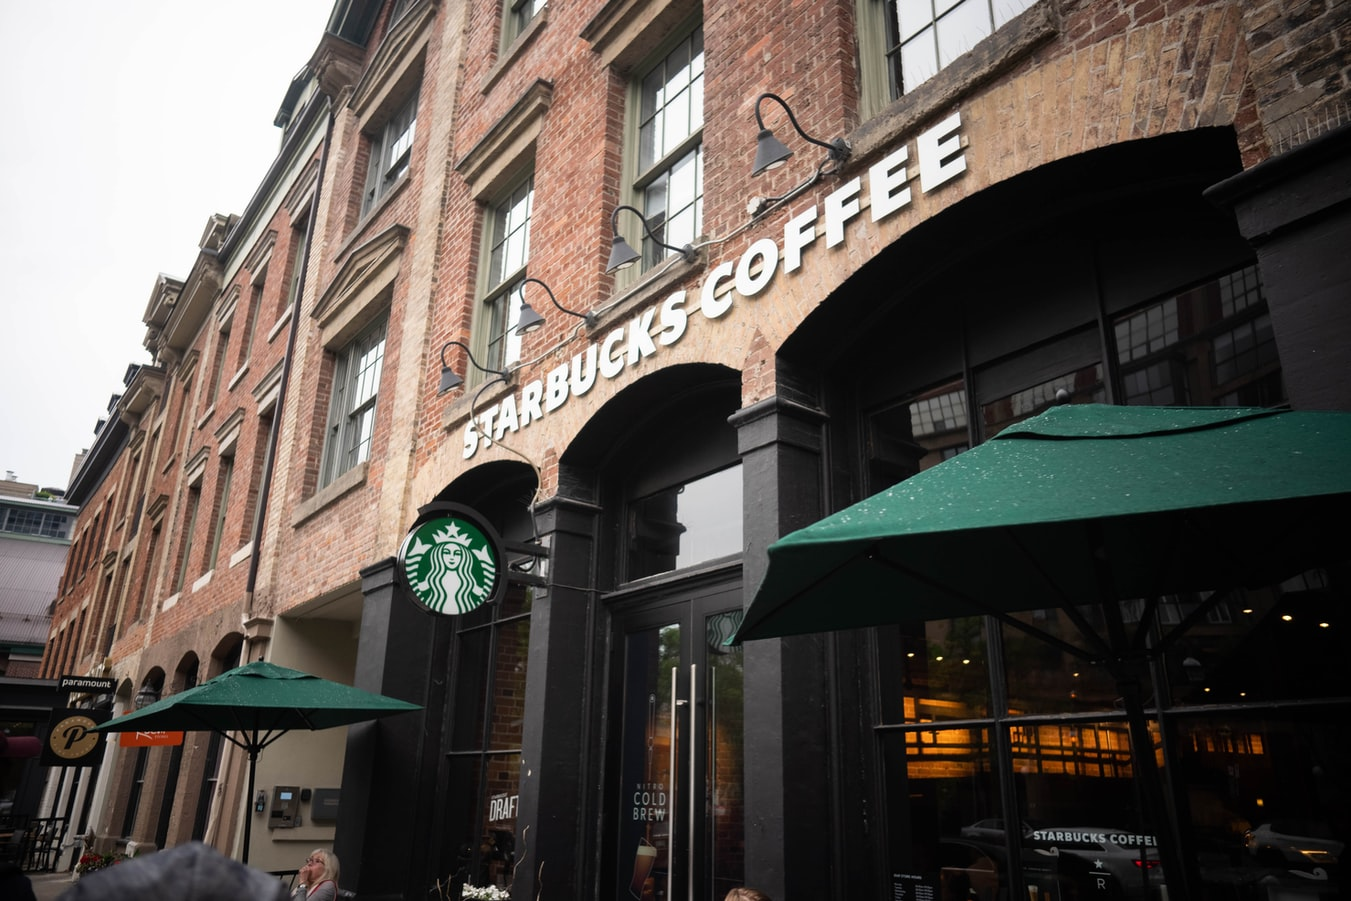 Starbucks coffee shop front